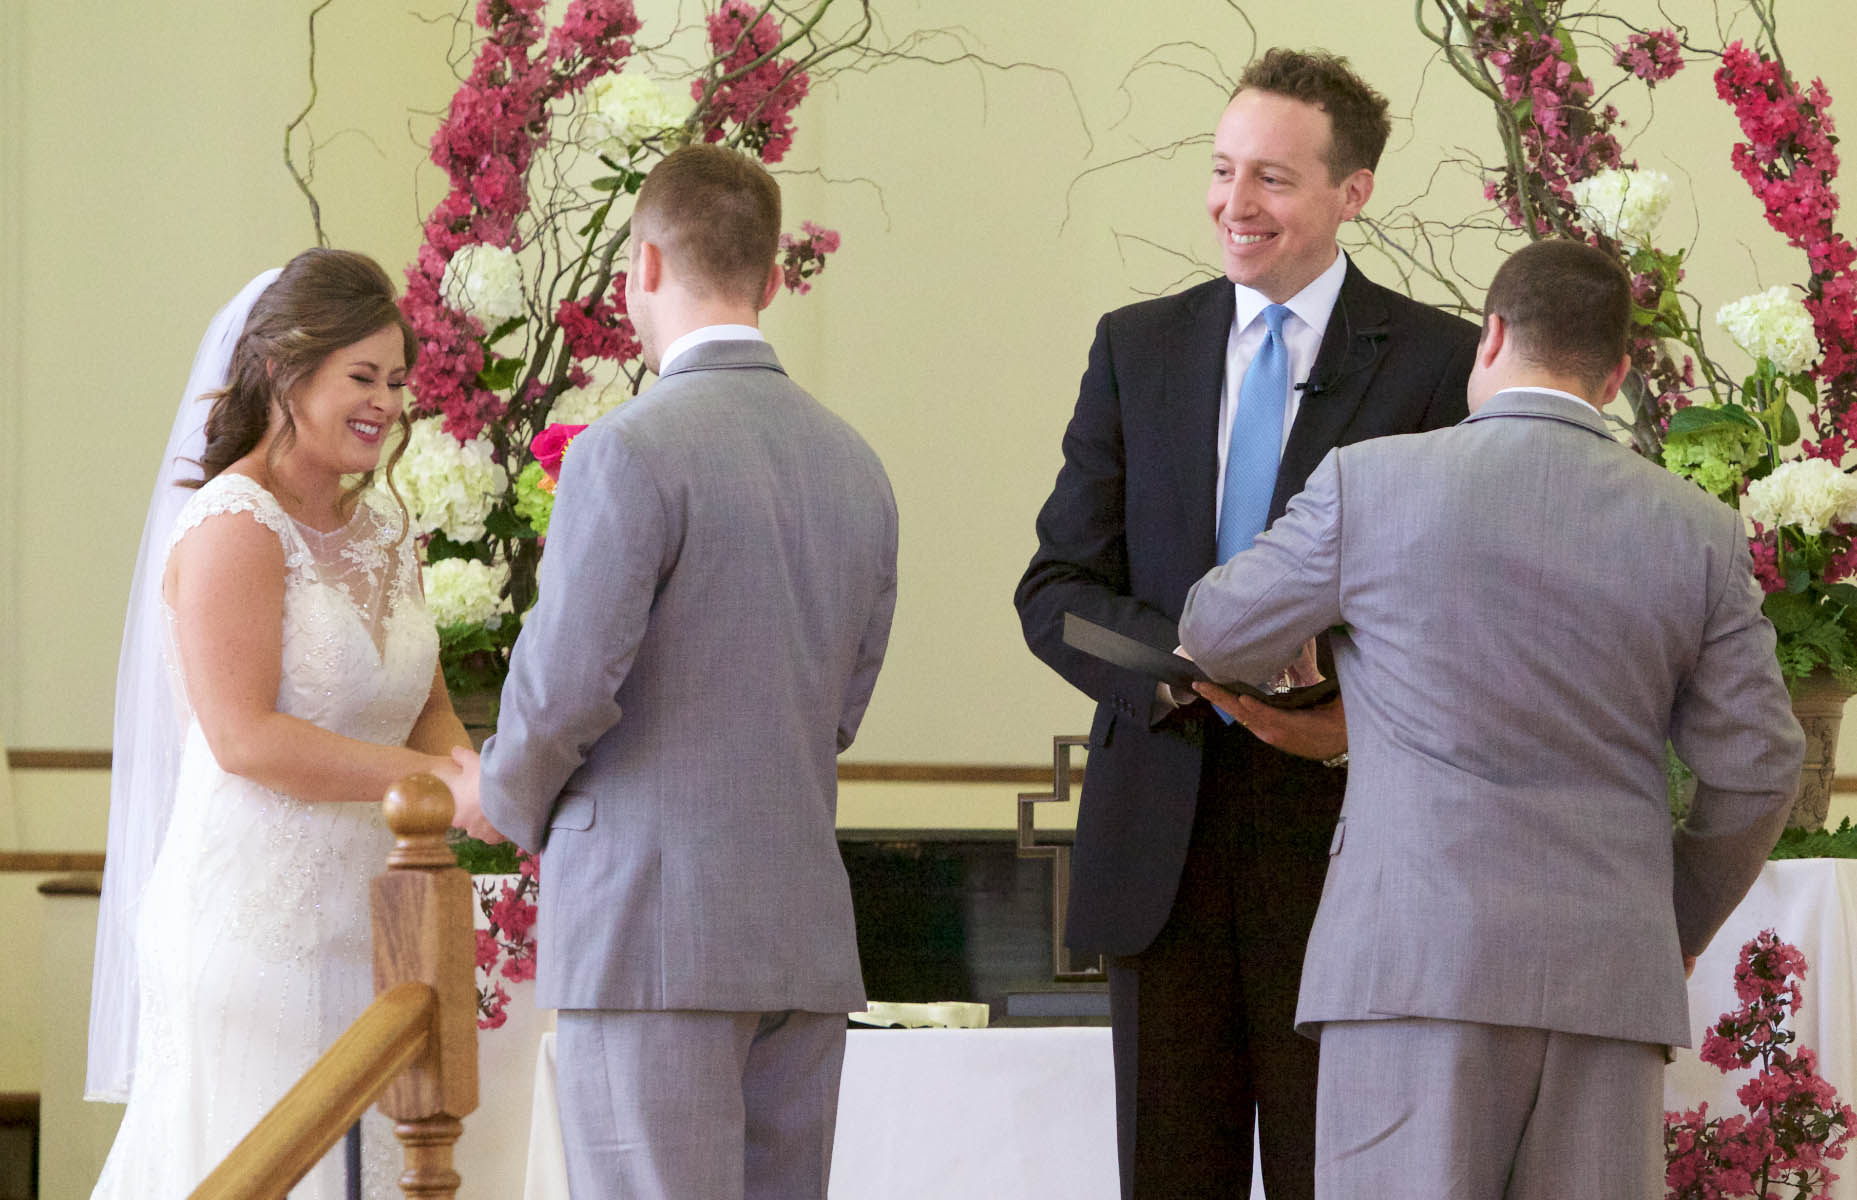 Alissa laughs as the best man hands officiant Tim Chipman a  ring pop. Wedding pictures by Tiffany & Steve of Warmowski Photography.